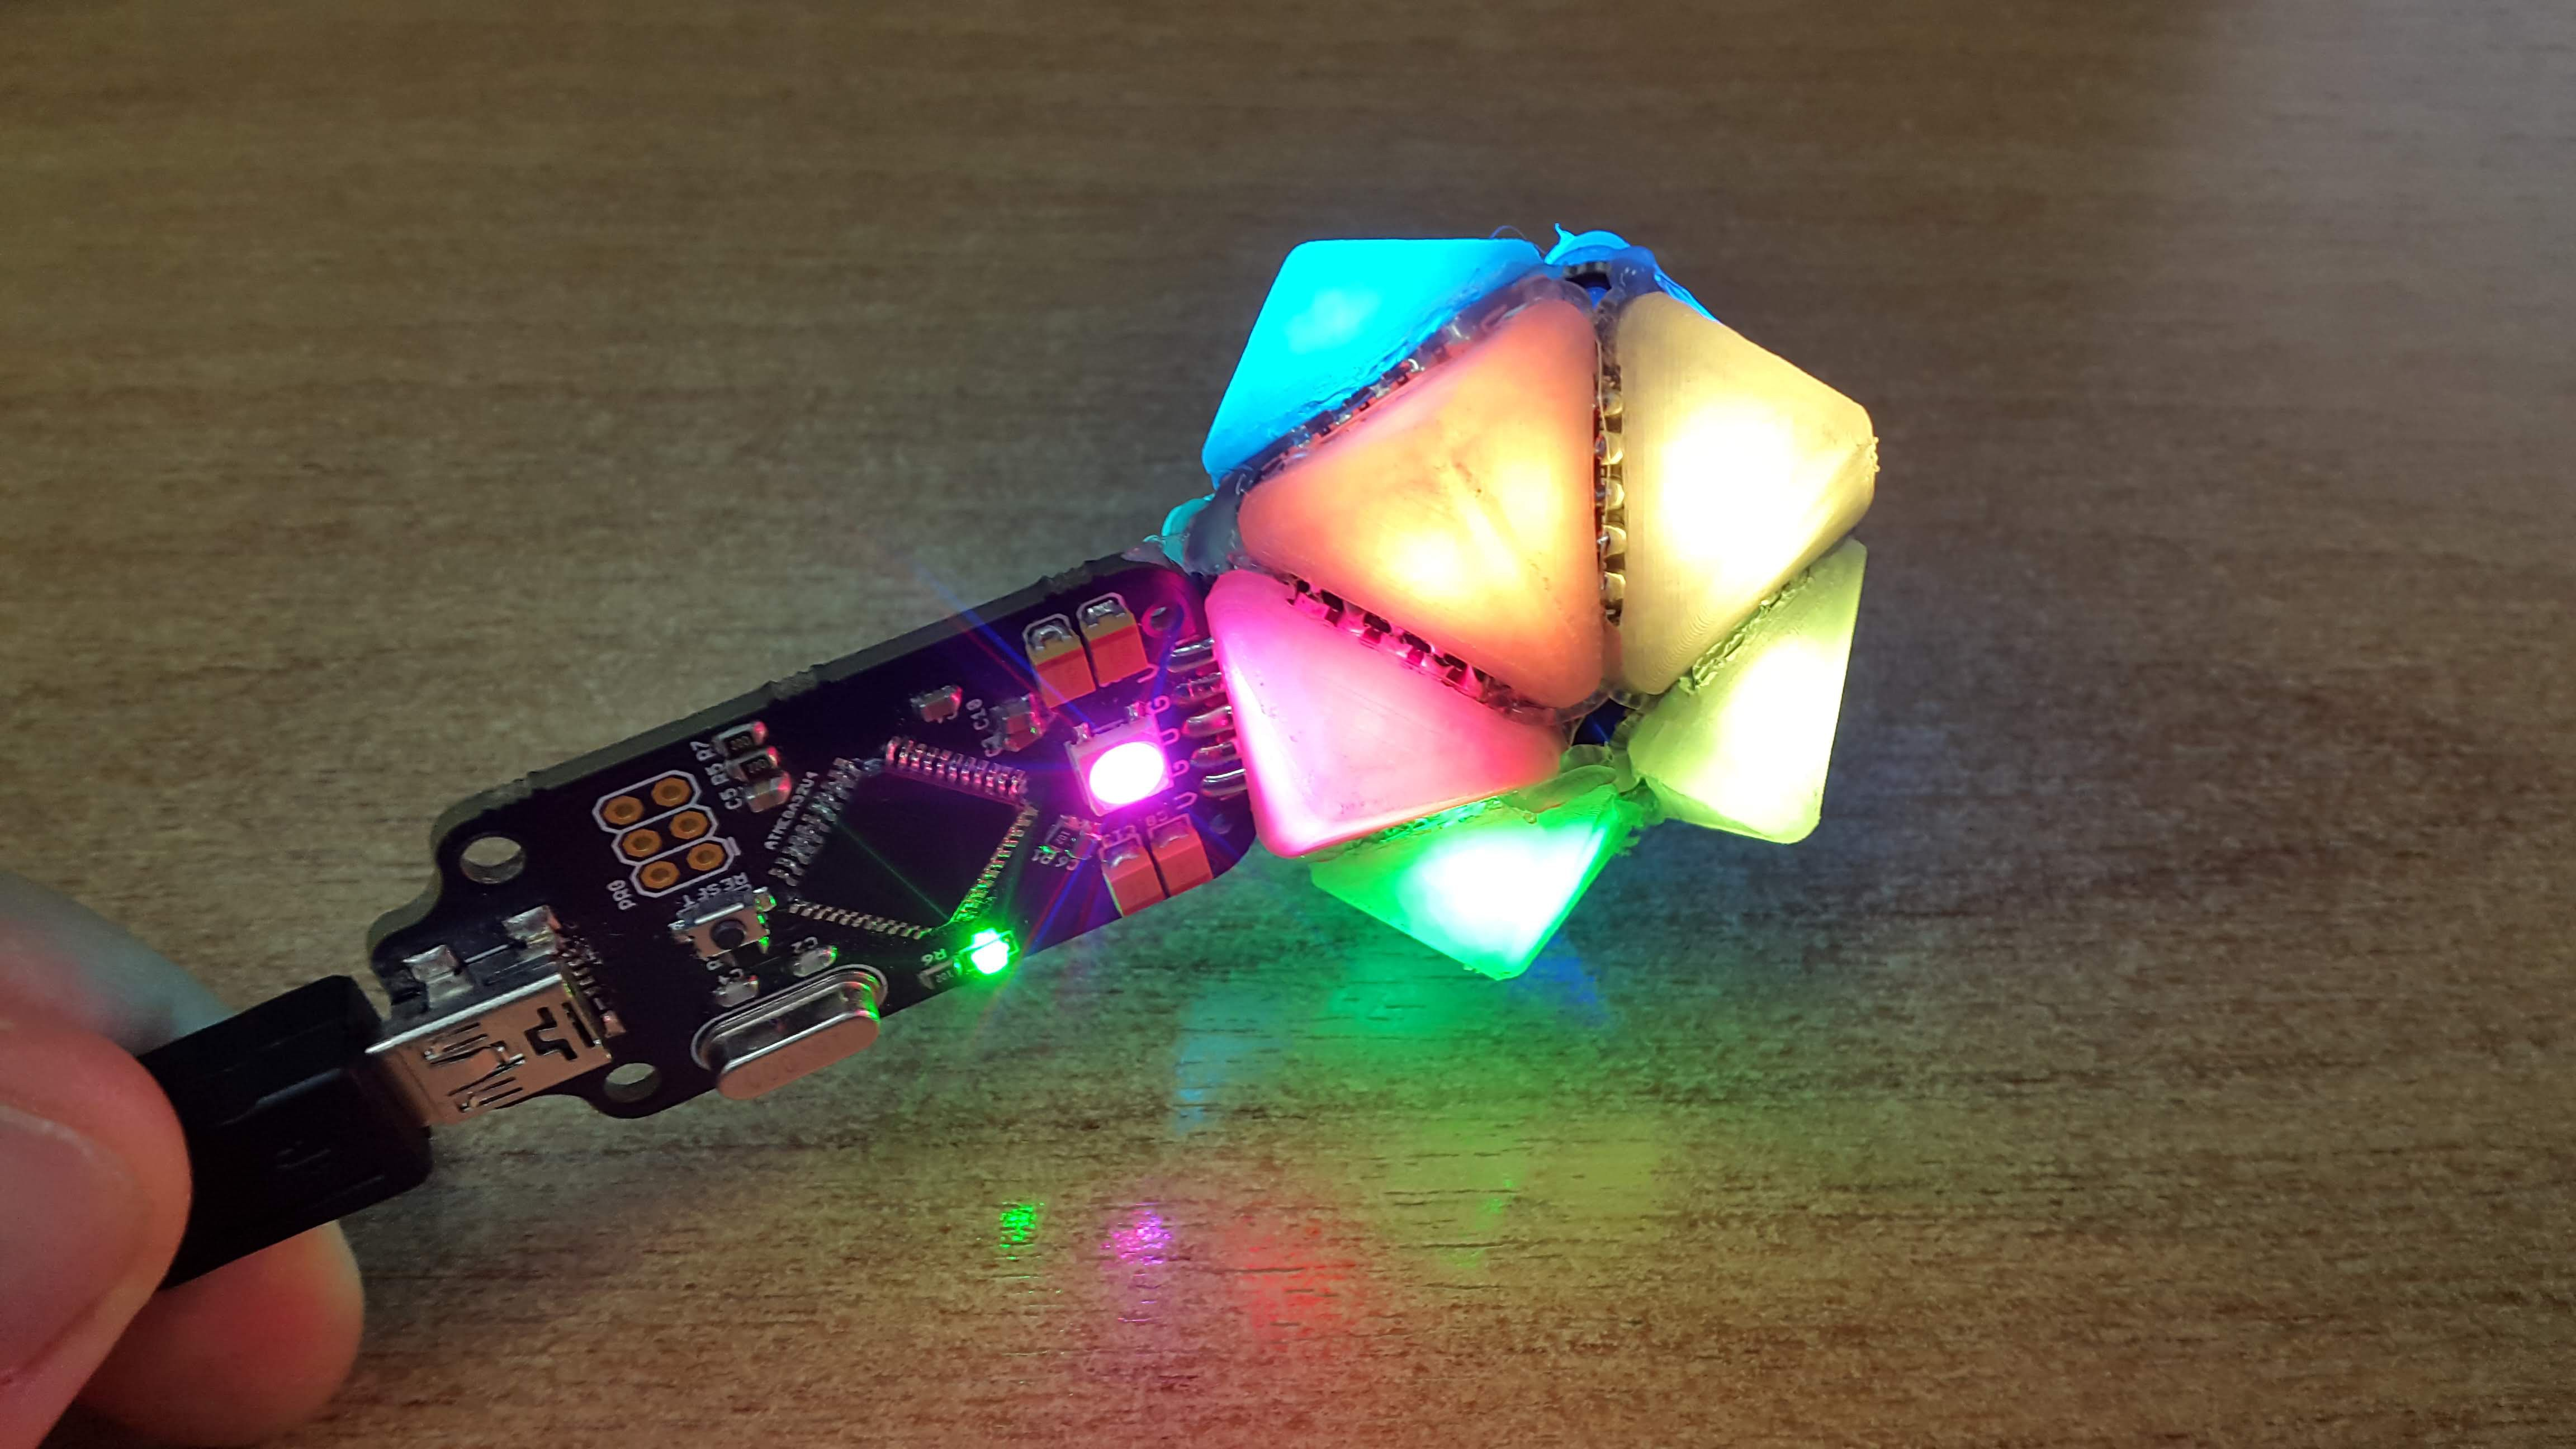 Trixel Led To The Light Emitting Diode Using Snap Circuits Do It Yourself Adding Some Diffuser Elements